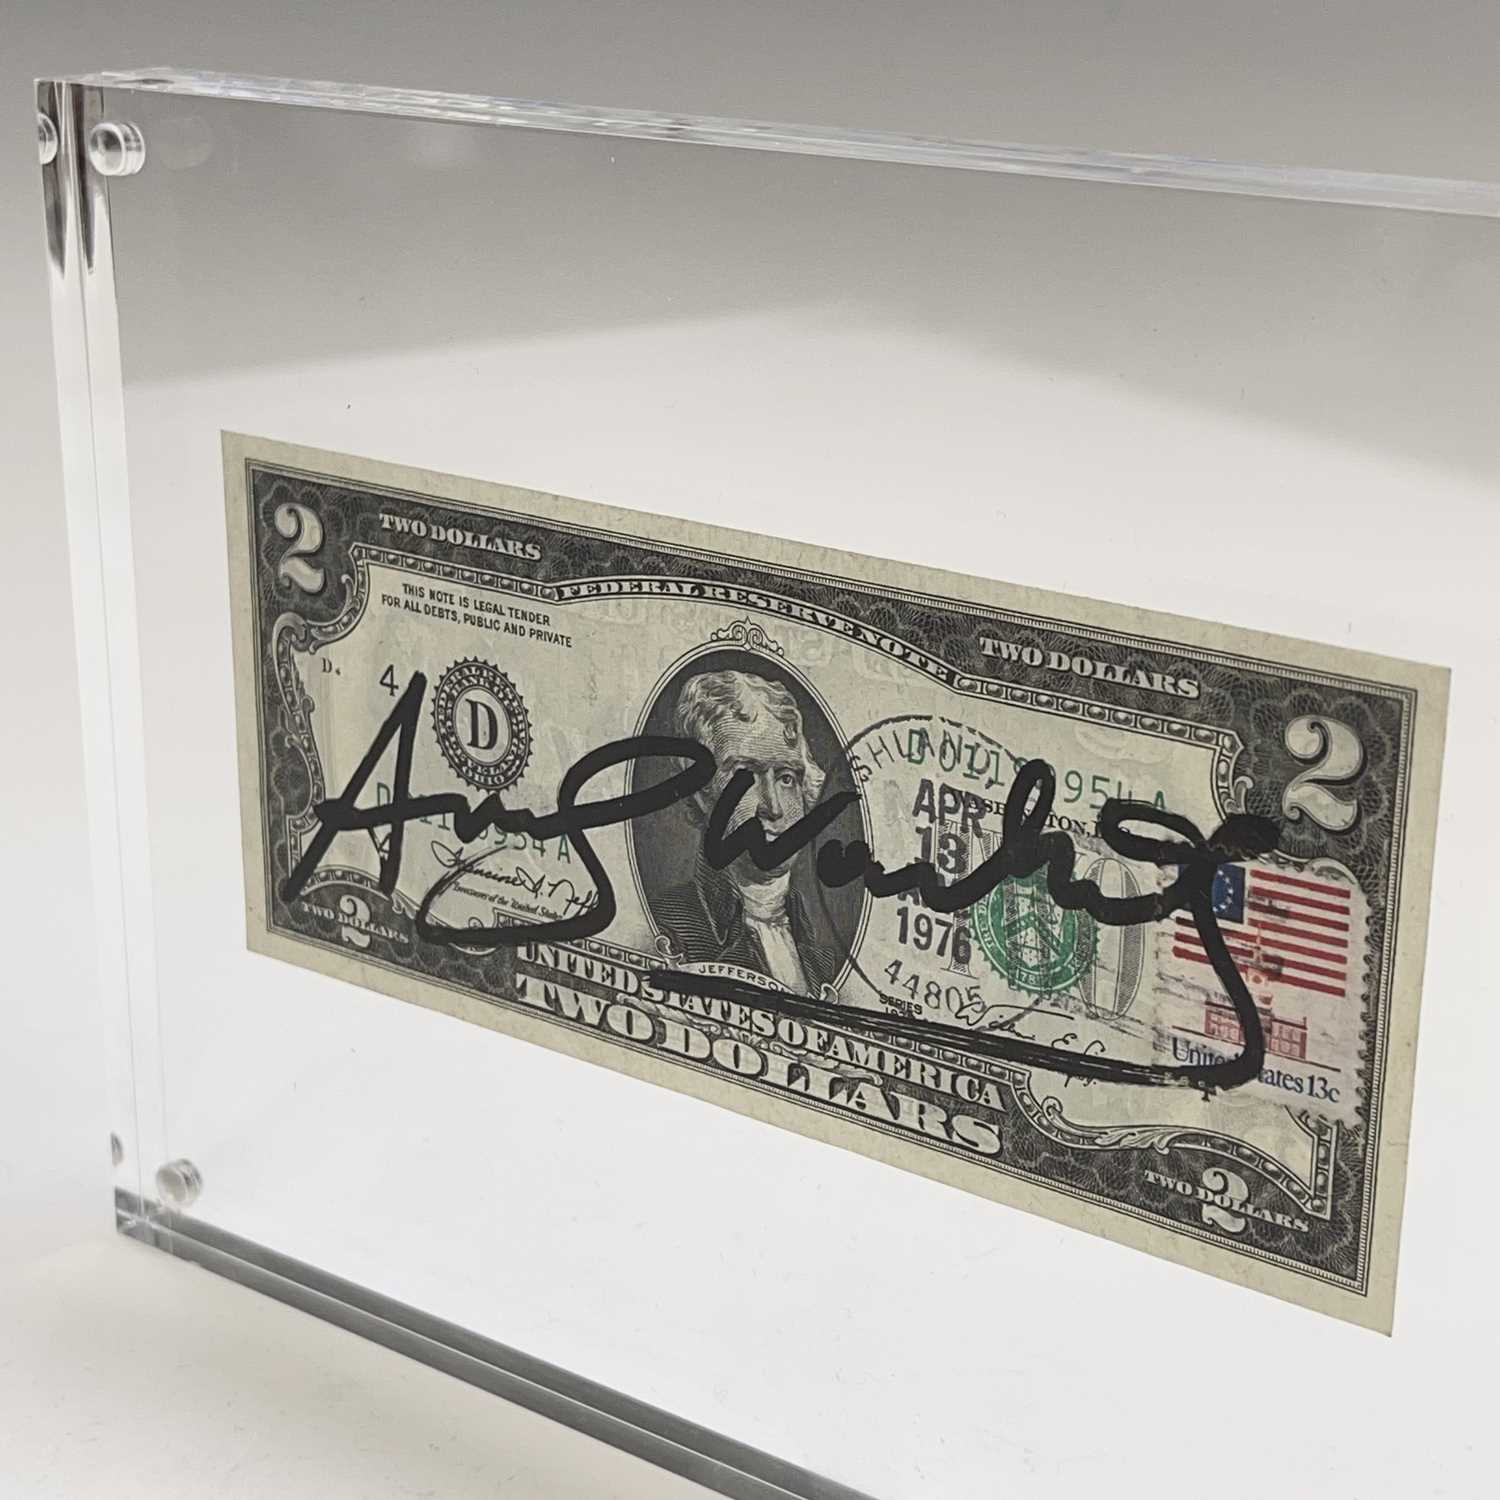 After Andy Warhol, a two-dollar banknote, bears signature, together with accompanying paperwork. - Image 5 of 14